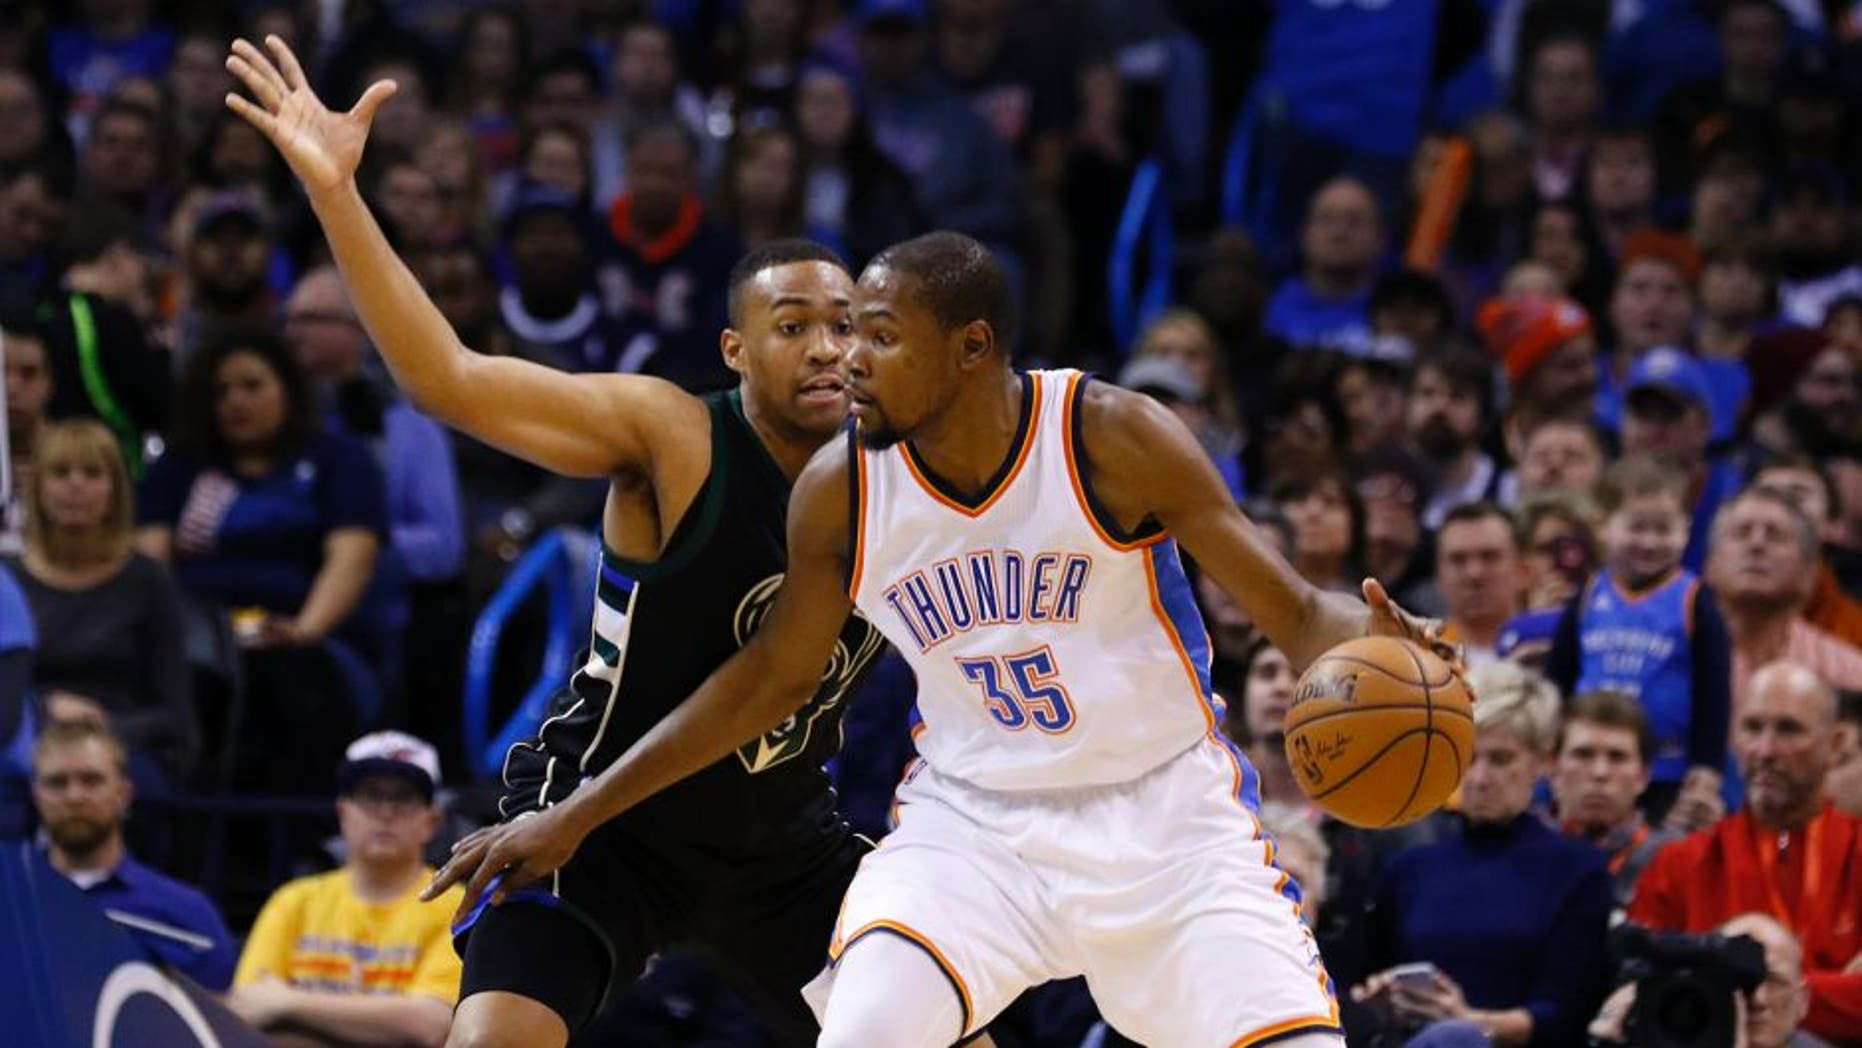 Milwaukee Bucks guard Khris Middleton, left, defends as Oklahoma City Thunder forward Kevin Durant (35) drives to the basket during the first quarter of an NBA basketball game in Oklahoma City, Tuesday, Dec. 29, 2015. (AP Photo/Alonzo Adams)